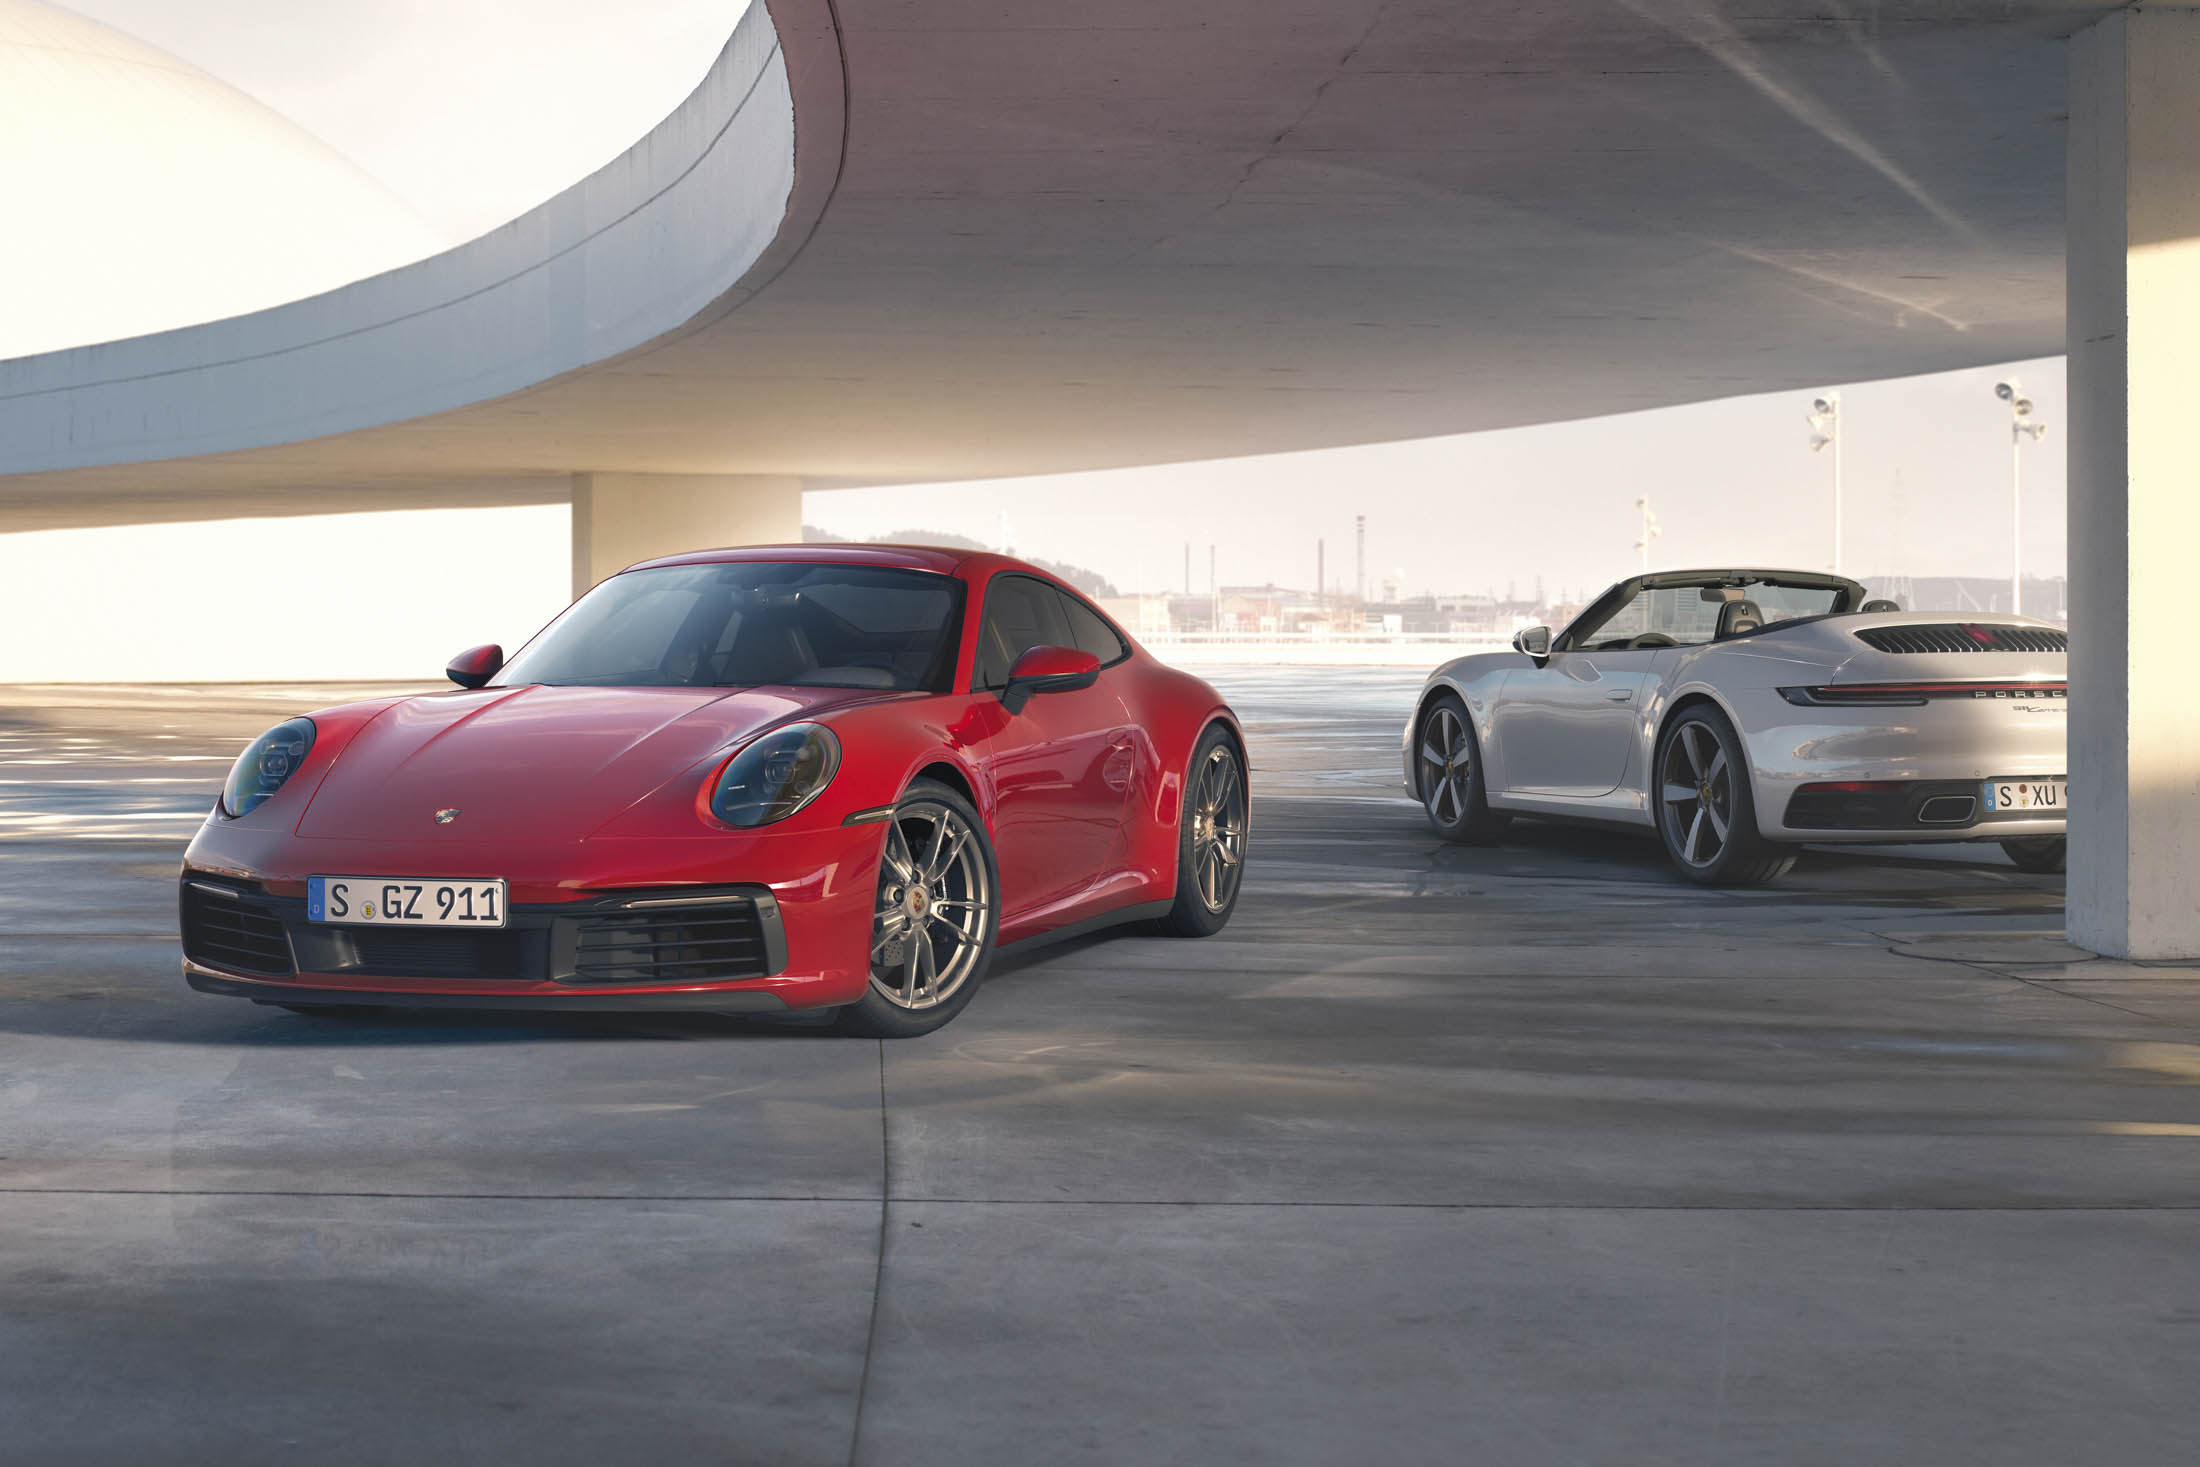 relates to The Porsche 911 Is the Most Profitable Car of 2019